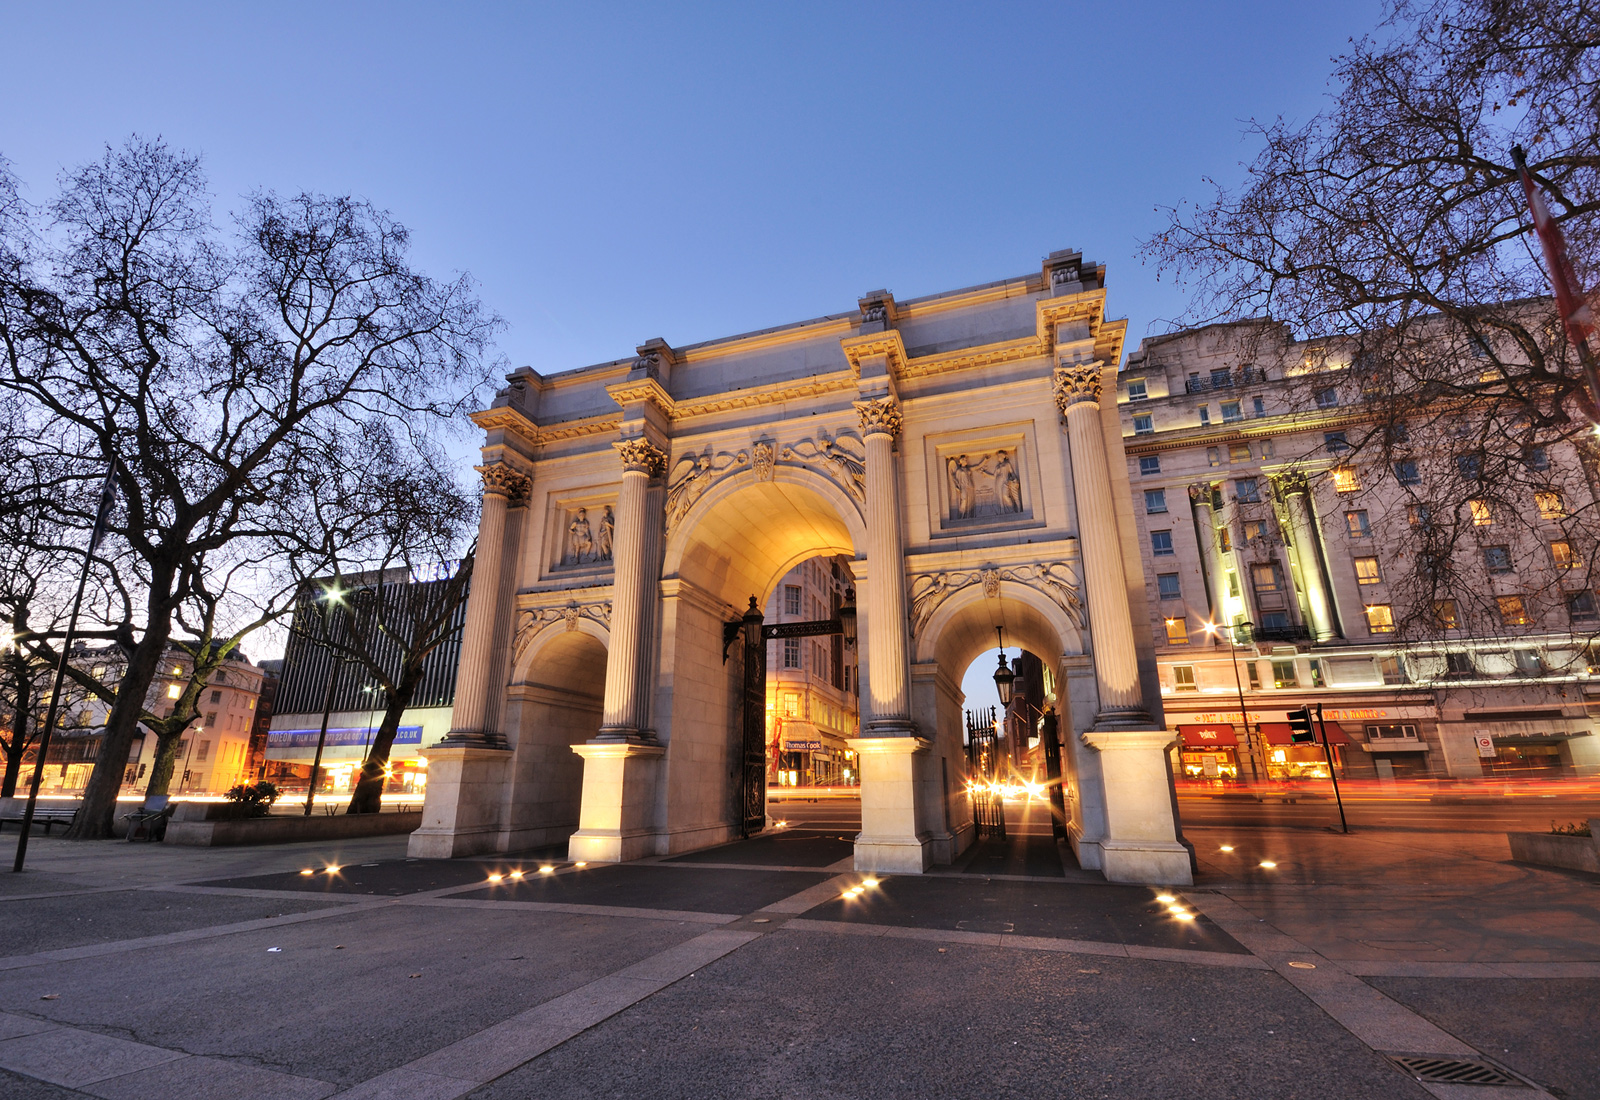 Marble-Arch-The-Arch-London